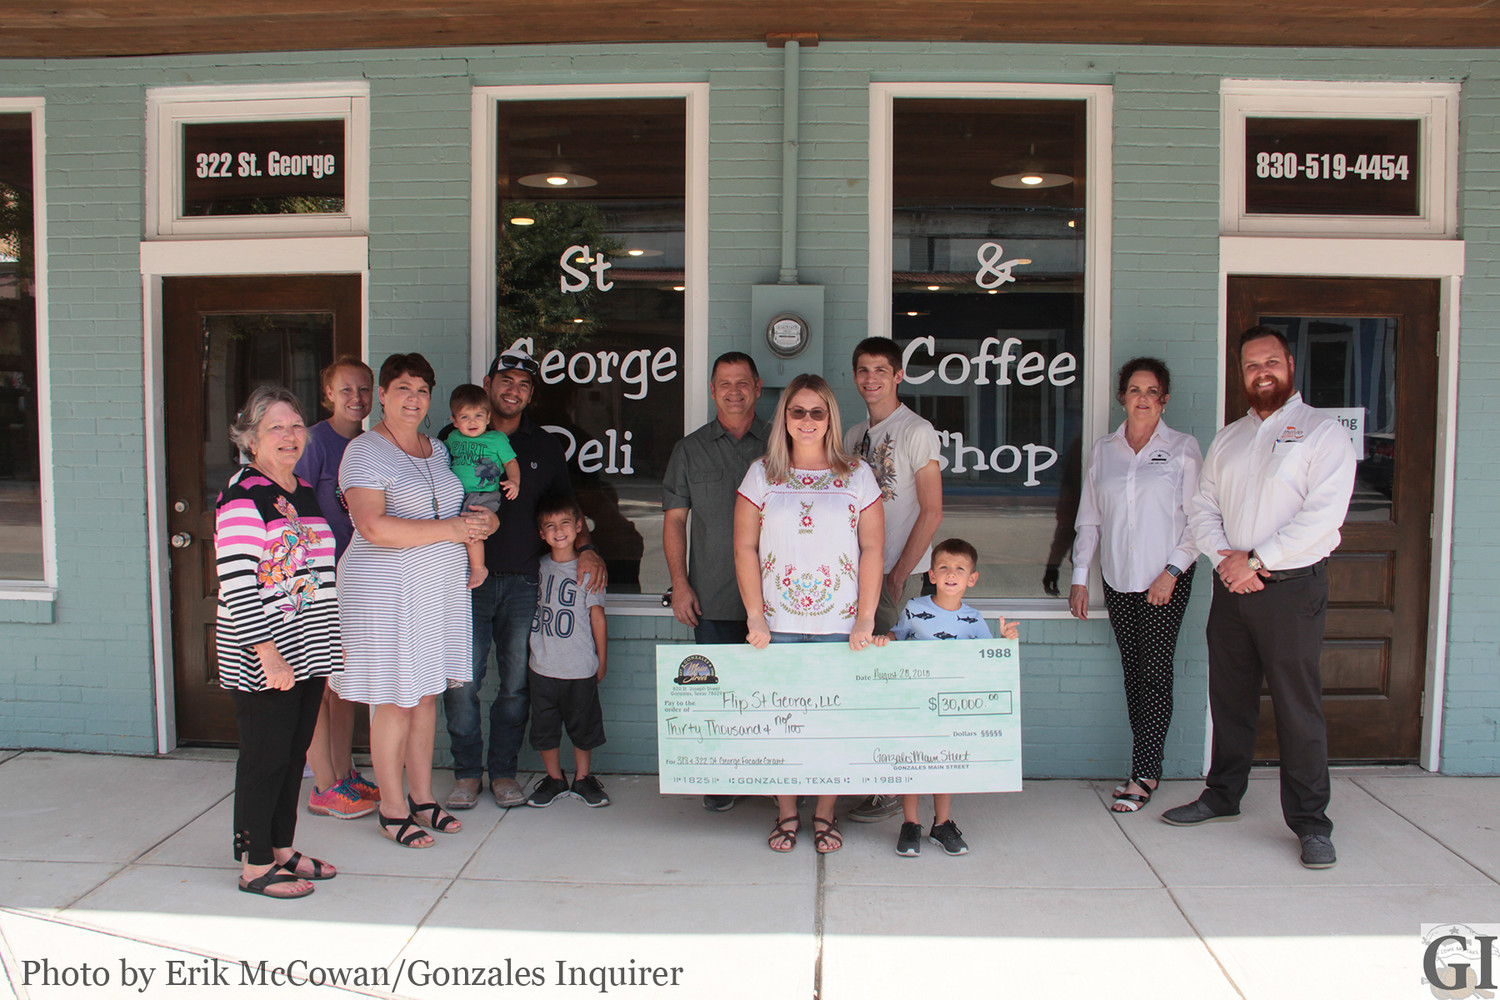 Members from Gonzales Main Street and the Gonzales Economic Development Corporation joined Jacob and Manda Leal and Linda and Stuart Frazier in front of their new storefront at 318 St. George Street, which is the latest recipient of a $30,000 small business grant to help revitalize the appearance of the building.